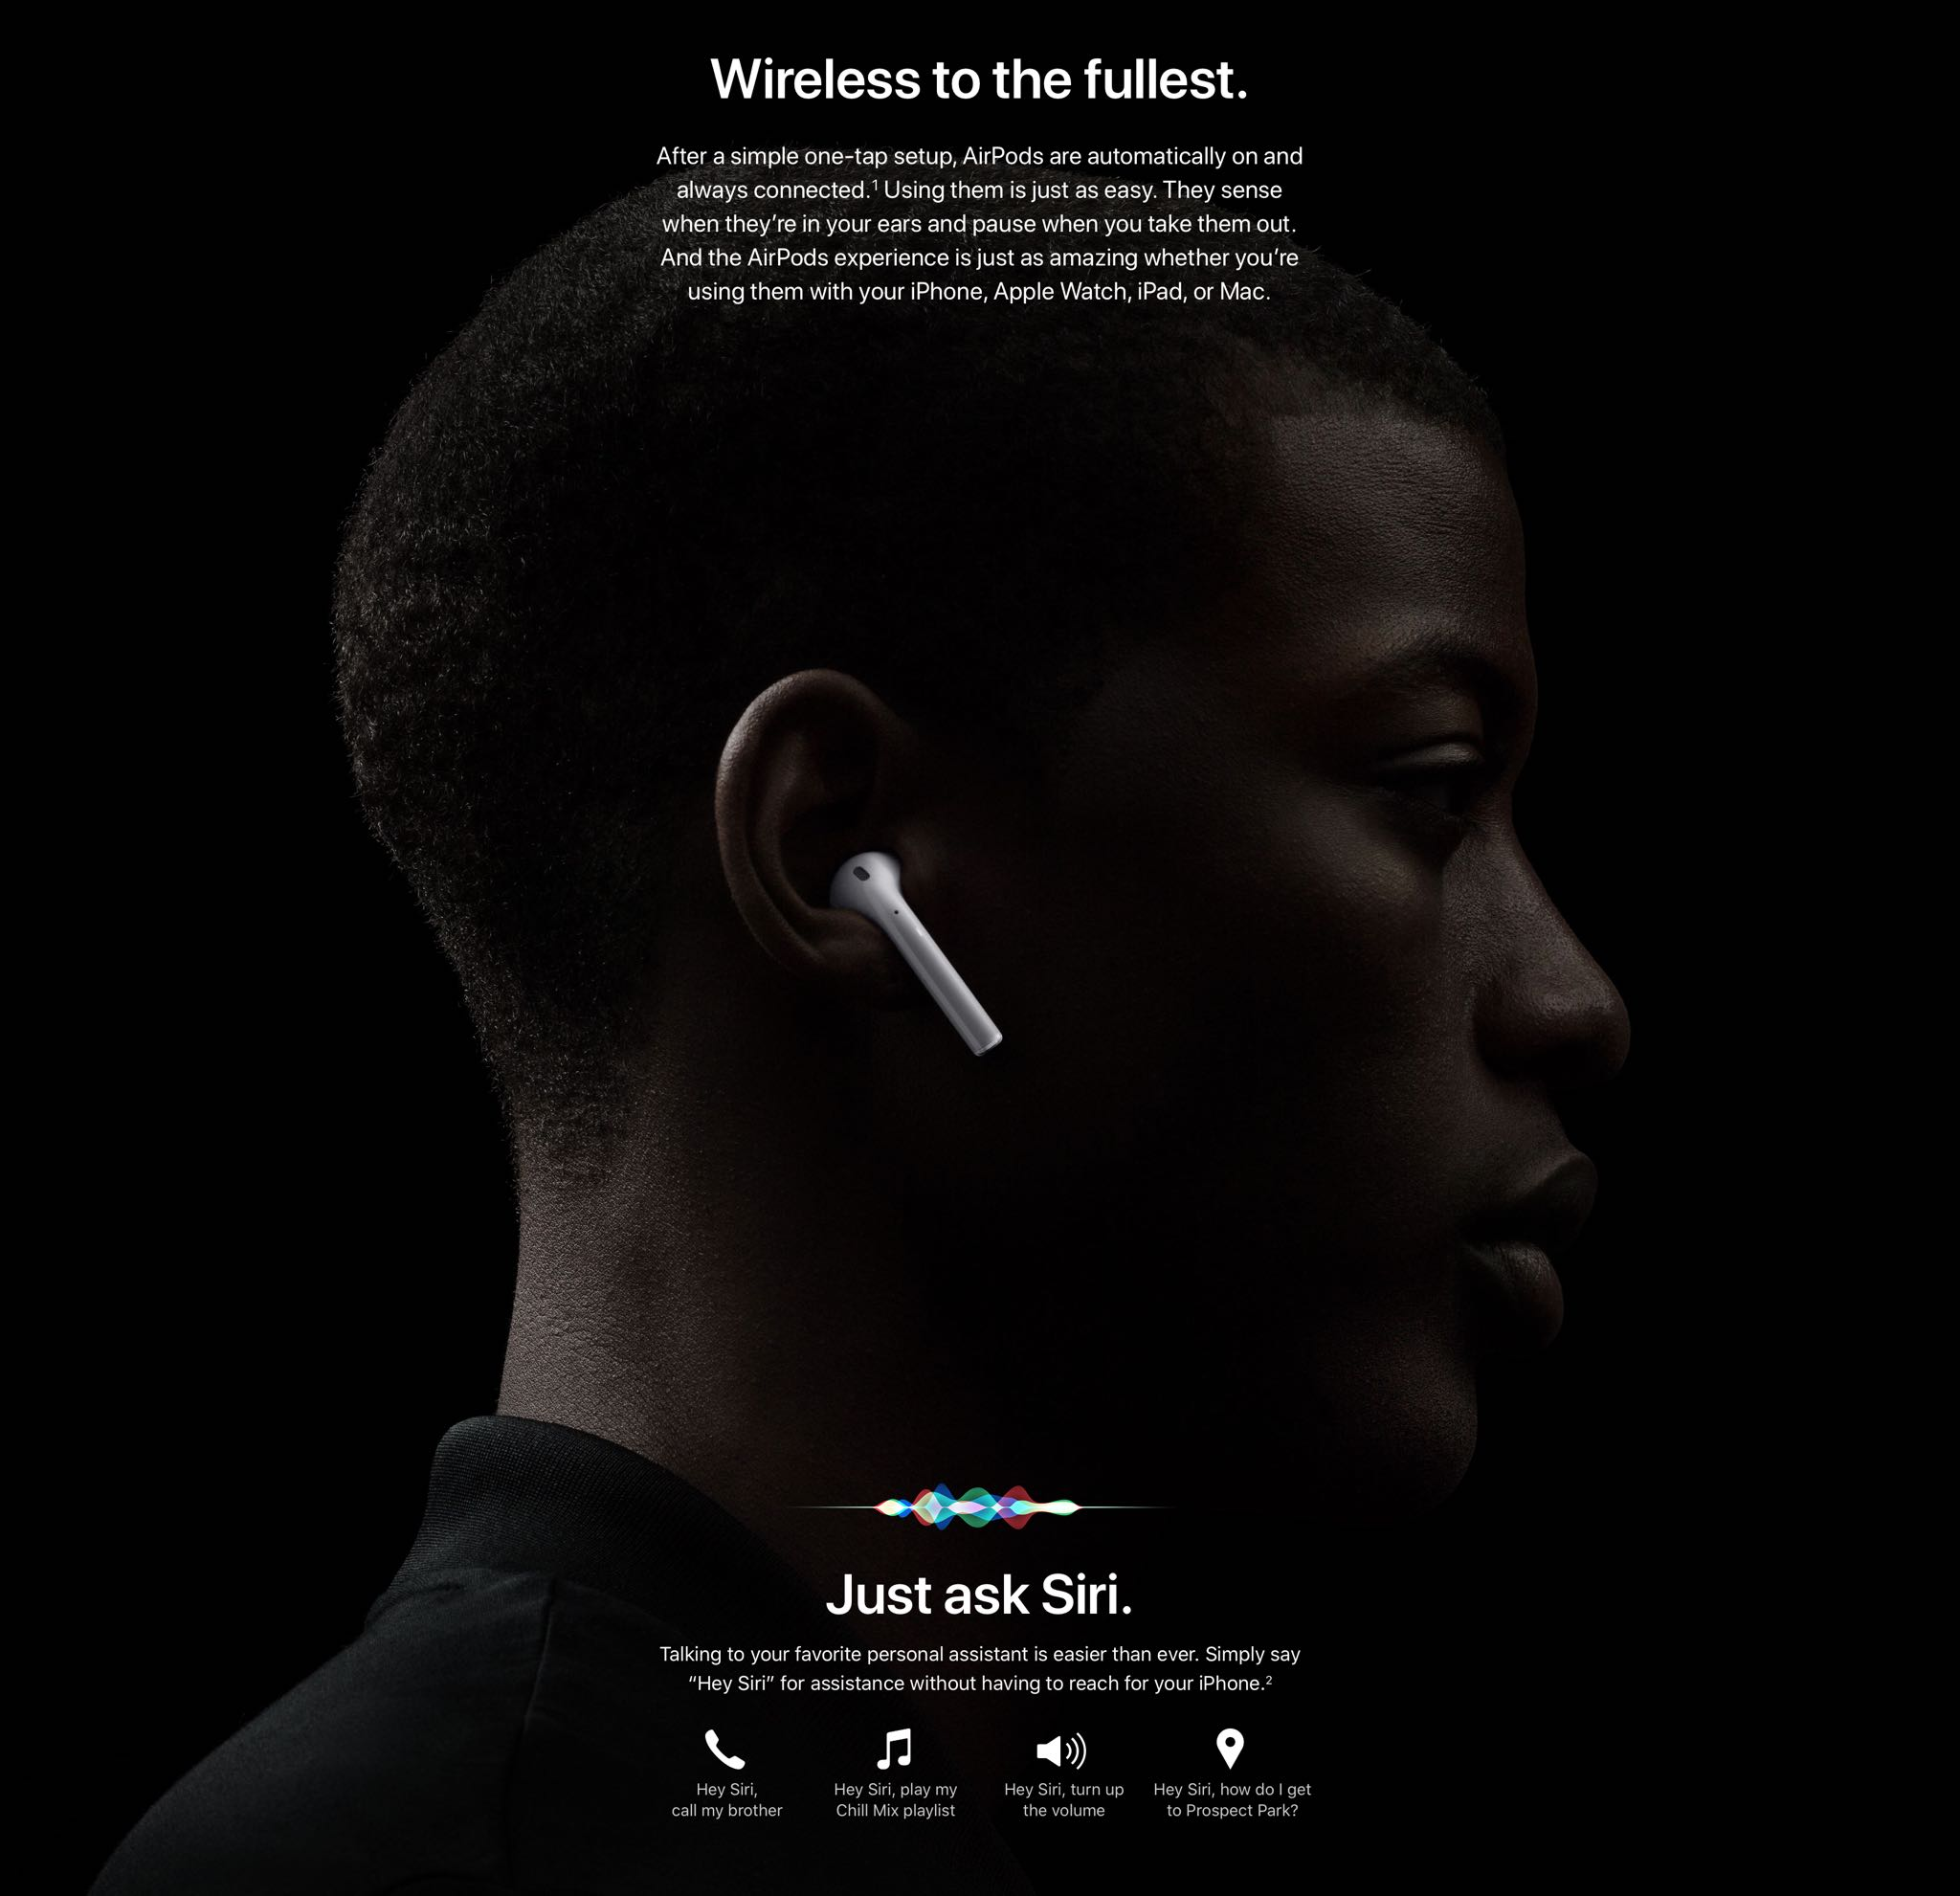 AirPods 2 are powered by the new Apple H1 chip